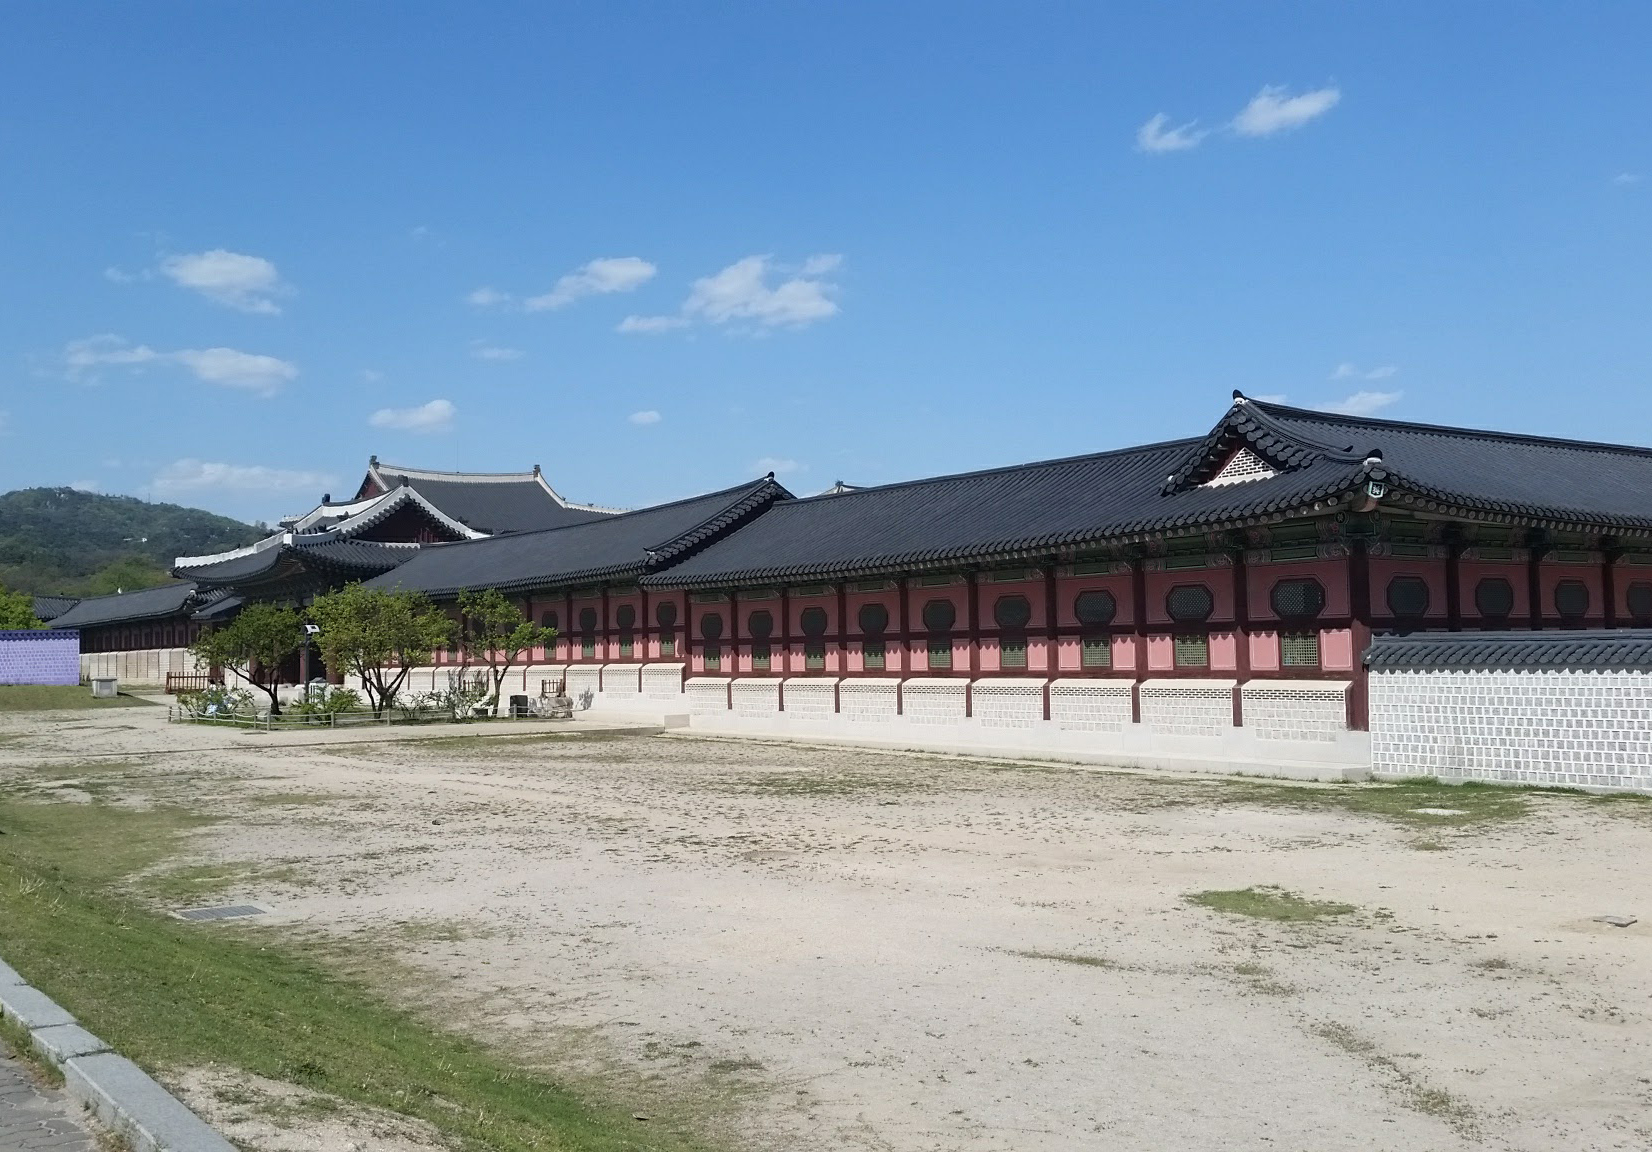 Gyeongbokgung - Heungnyemun: The Second Inner Gate)